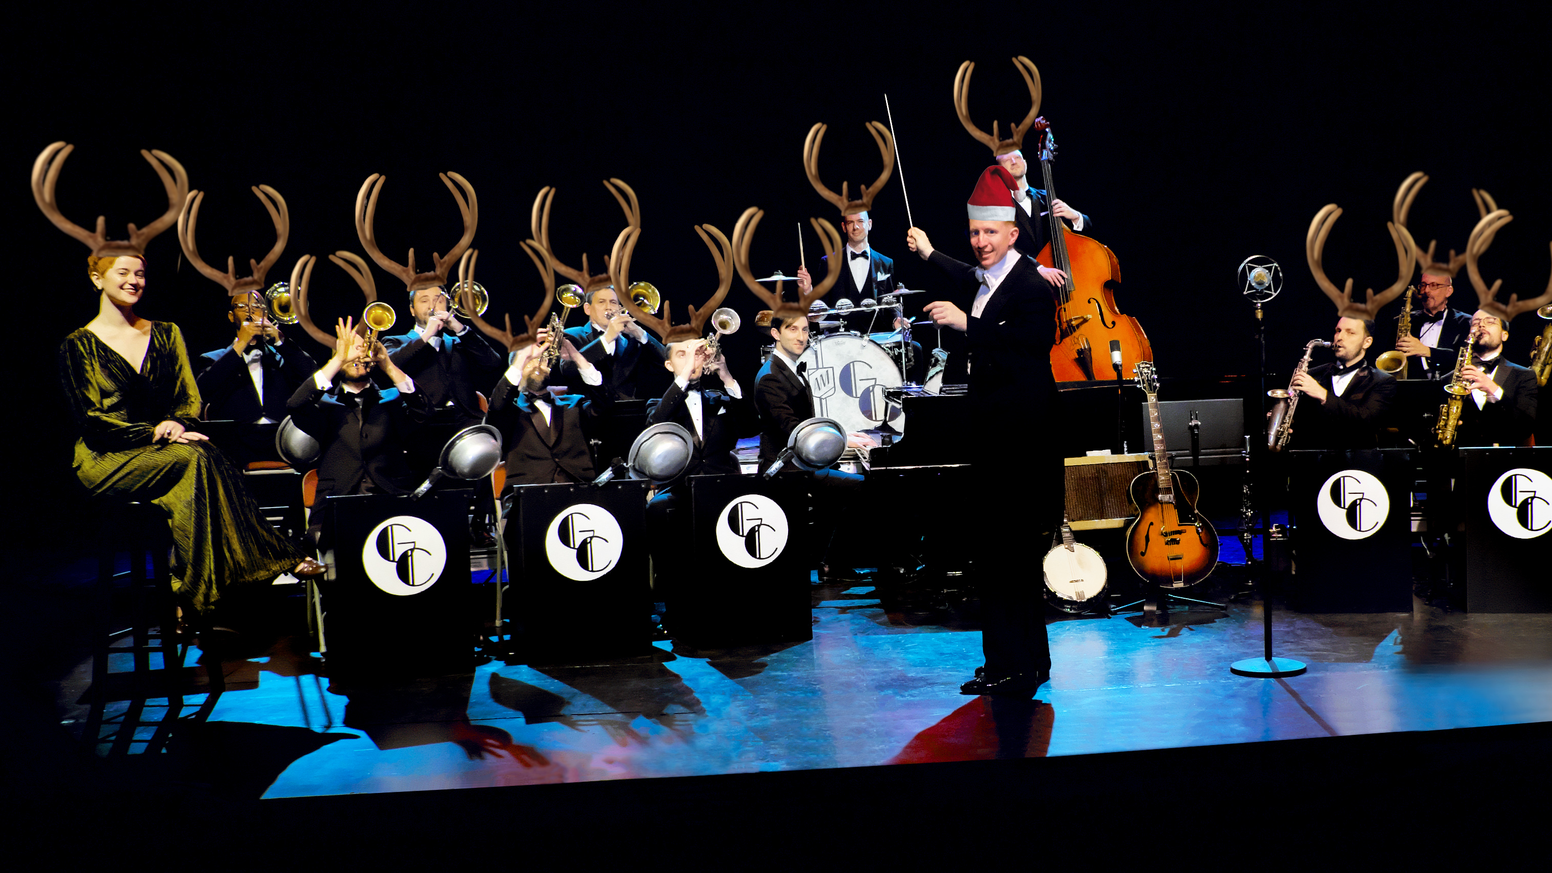 A swinging big band holiday album from the Glenn Crytzer Orchestra with 11 new Christmas songs and 9 new arrangements of classics!